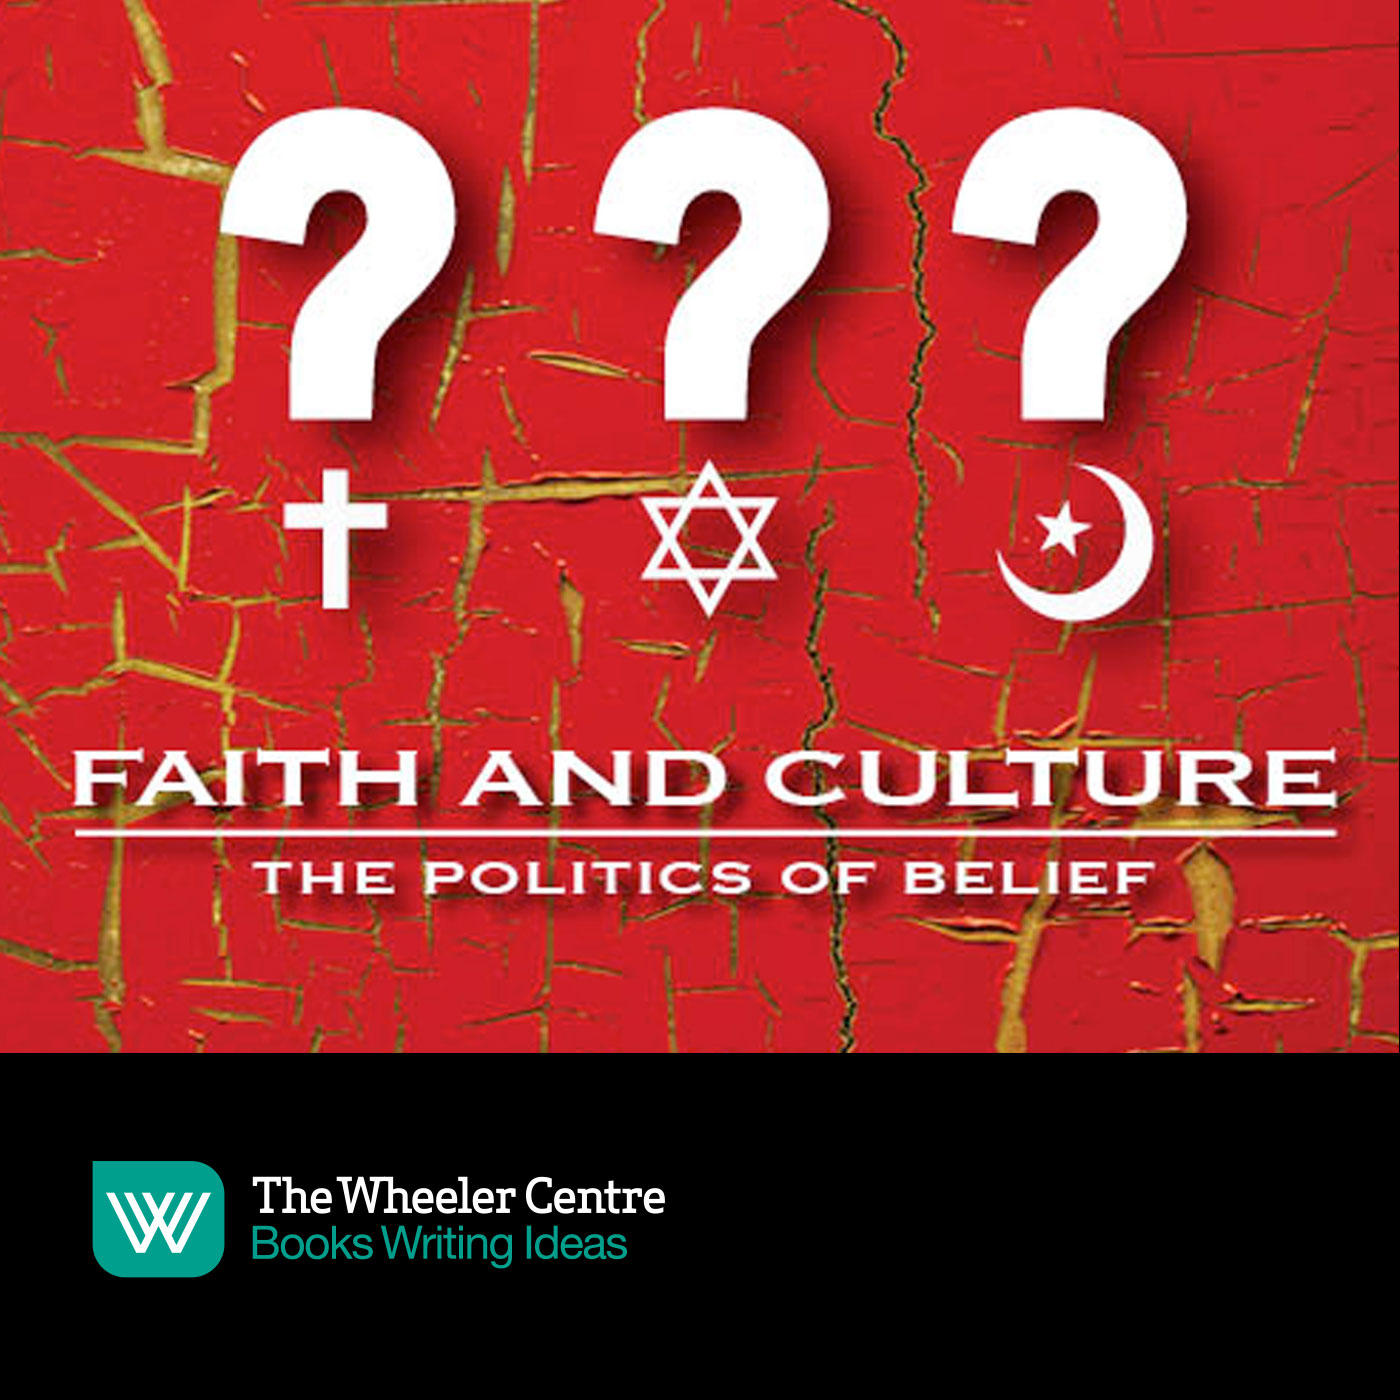 Faith and Culture: The Politics of Belief